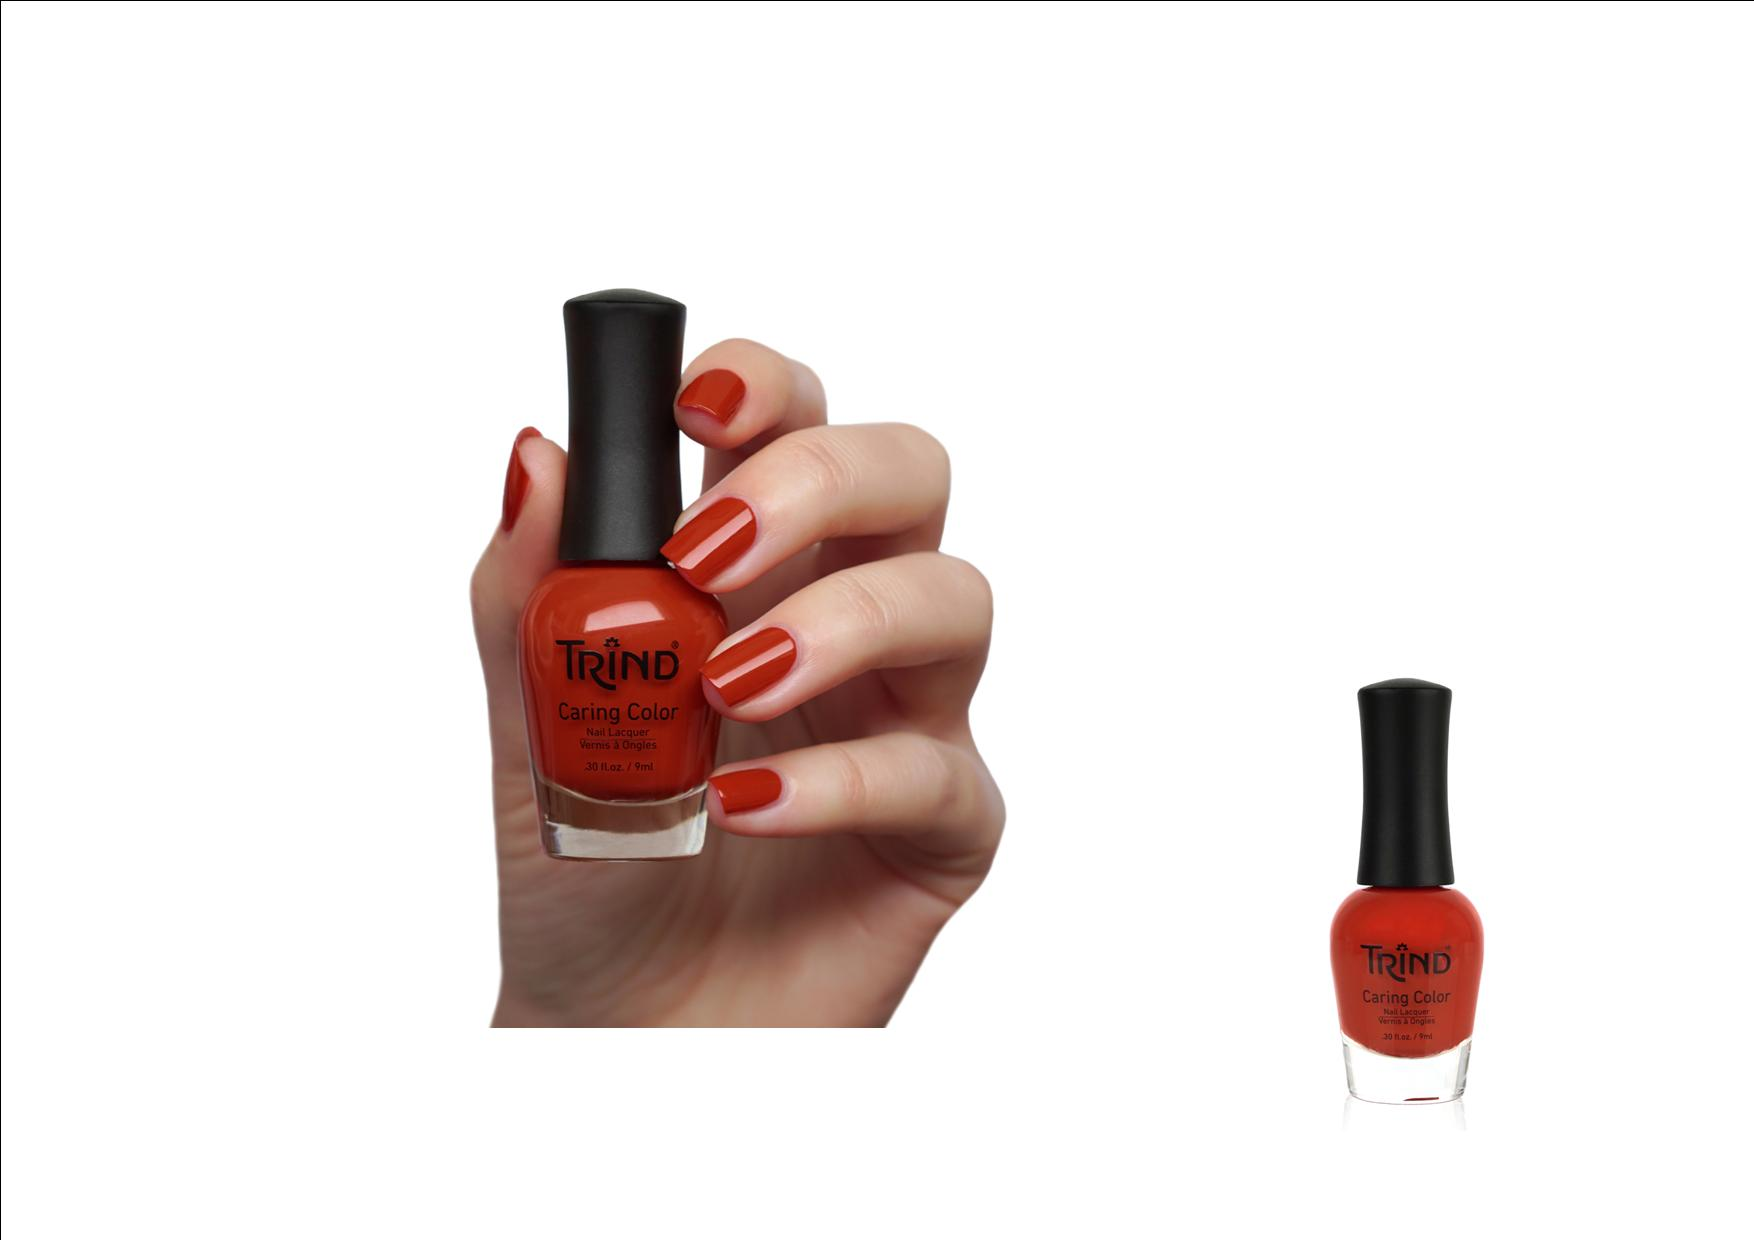 Trind Caring Color Nagellak 274 Very Vermillion